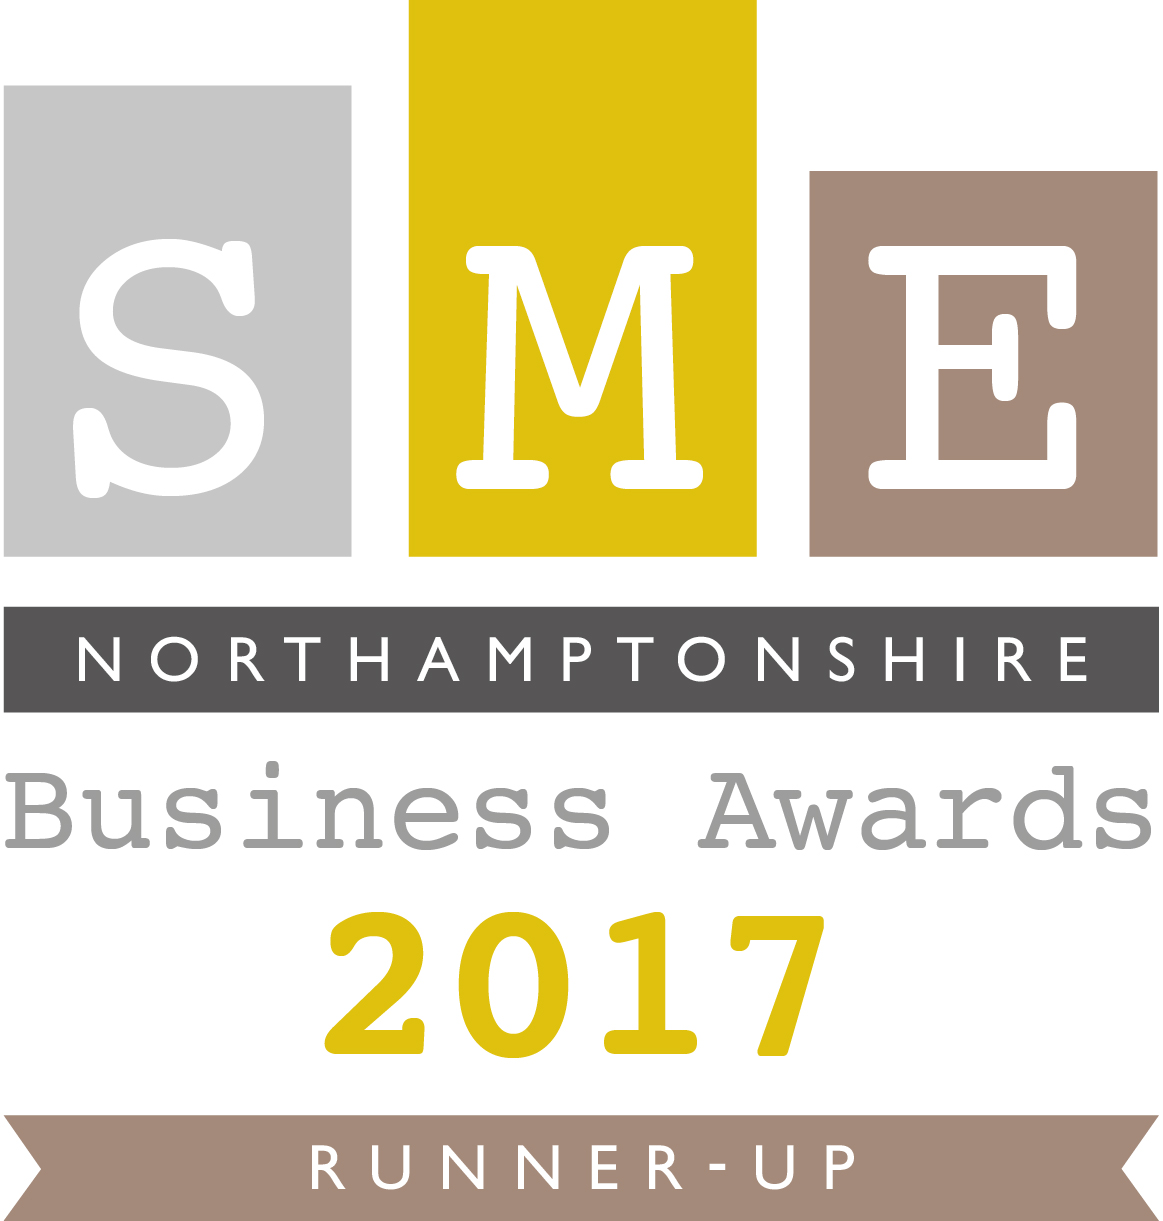 Trainers Network Northamptonshire is Runner-Up Networking Group of the Year 2017